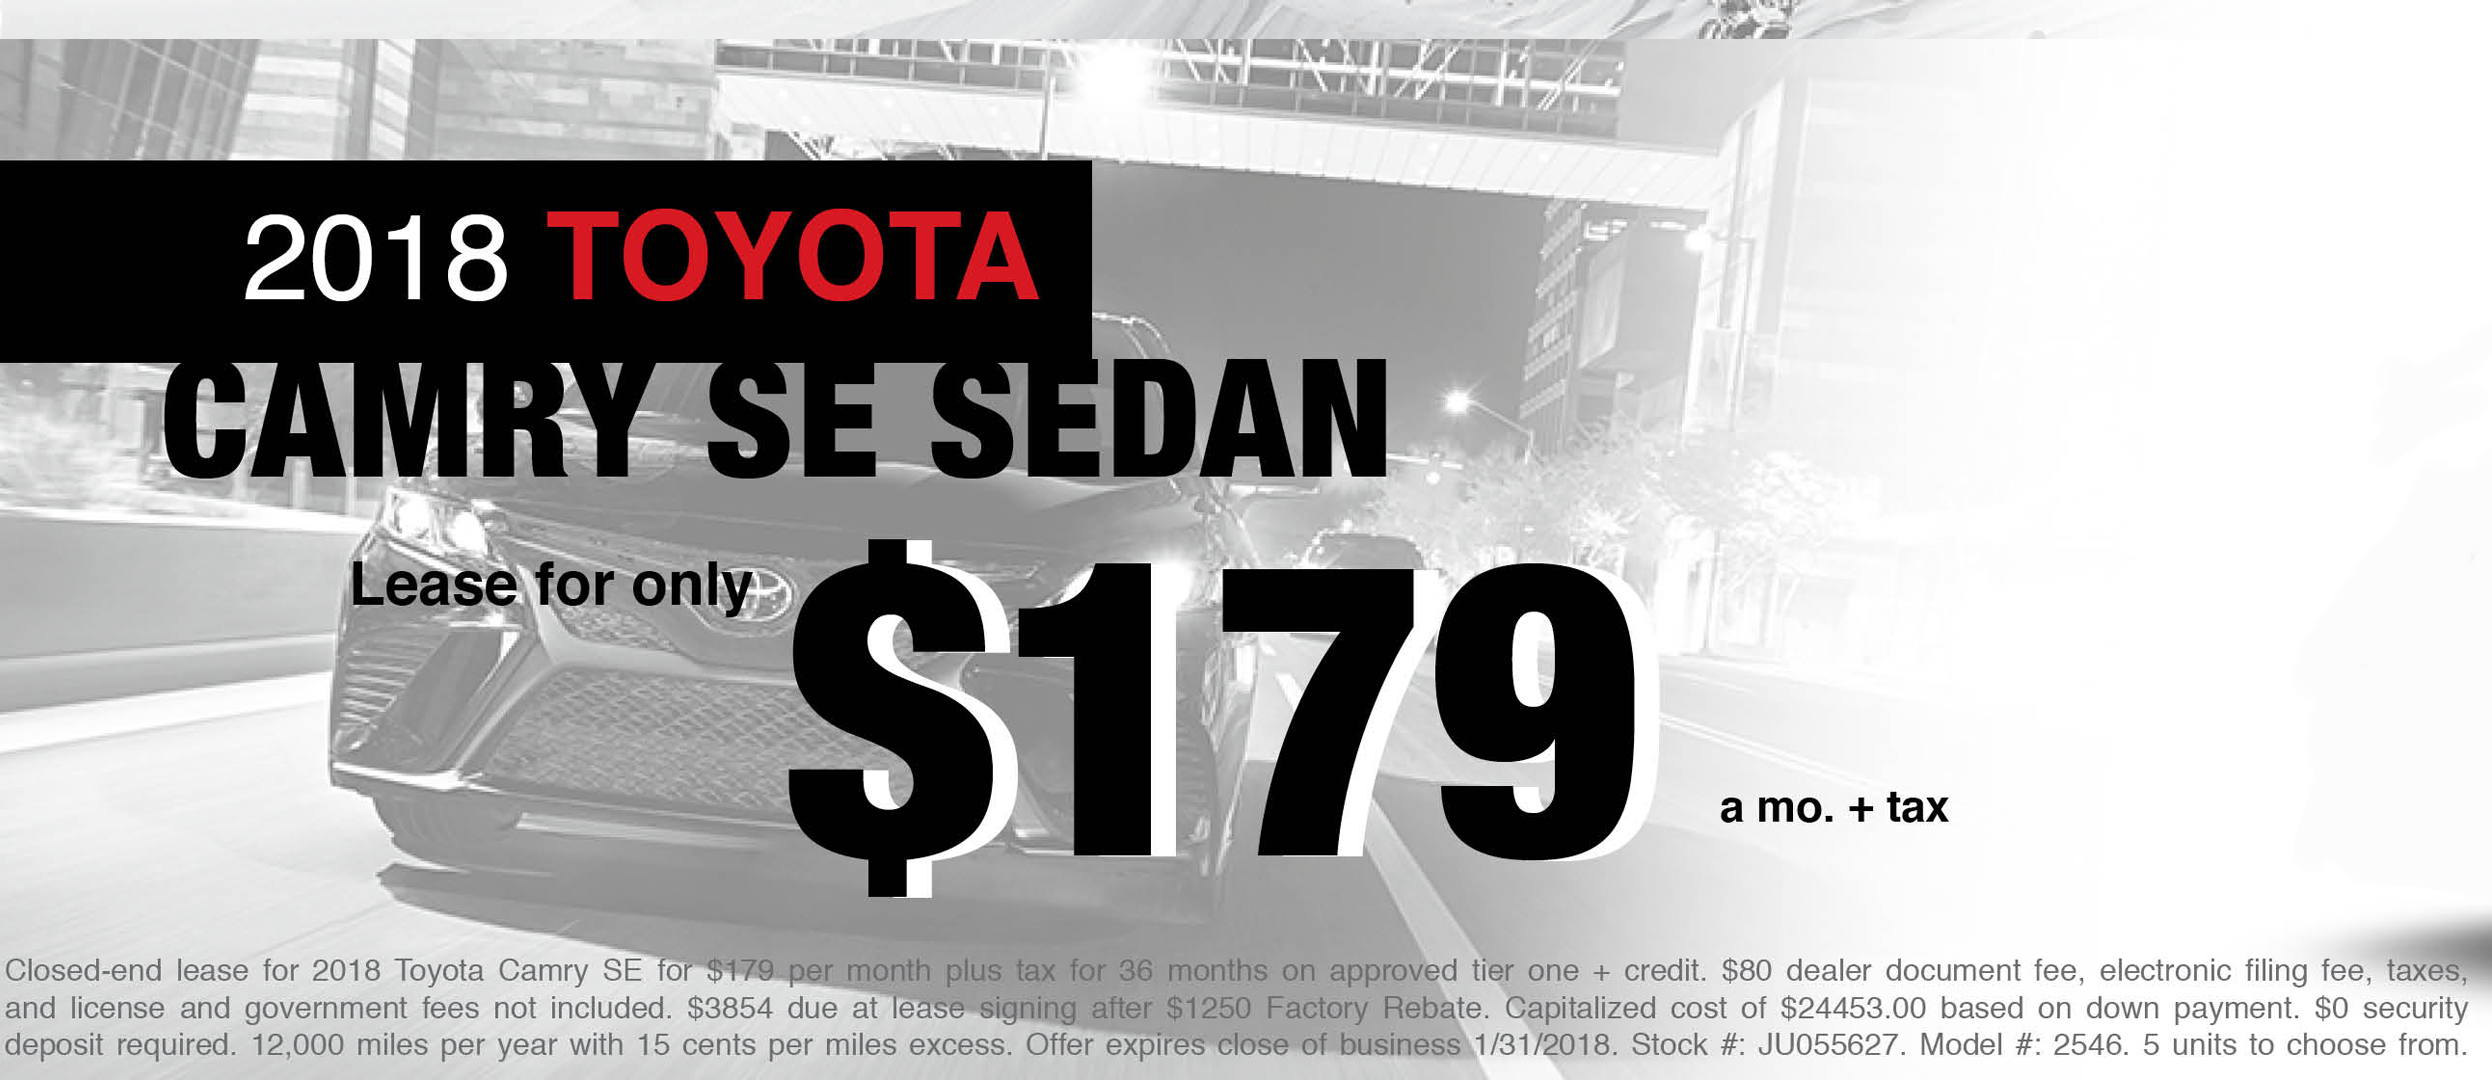 New 2018 Toyota Camry SE Lease Offer